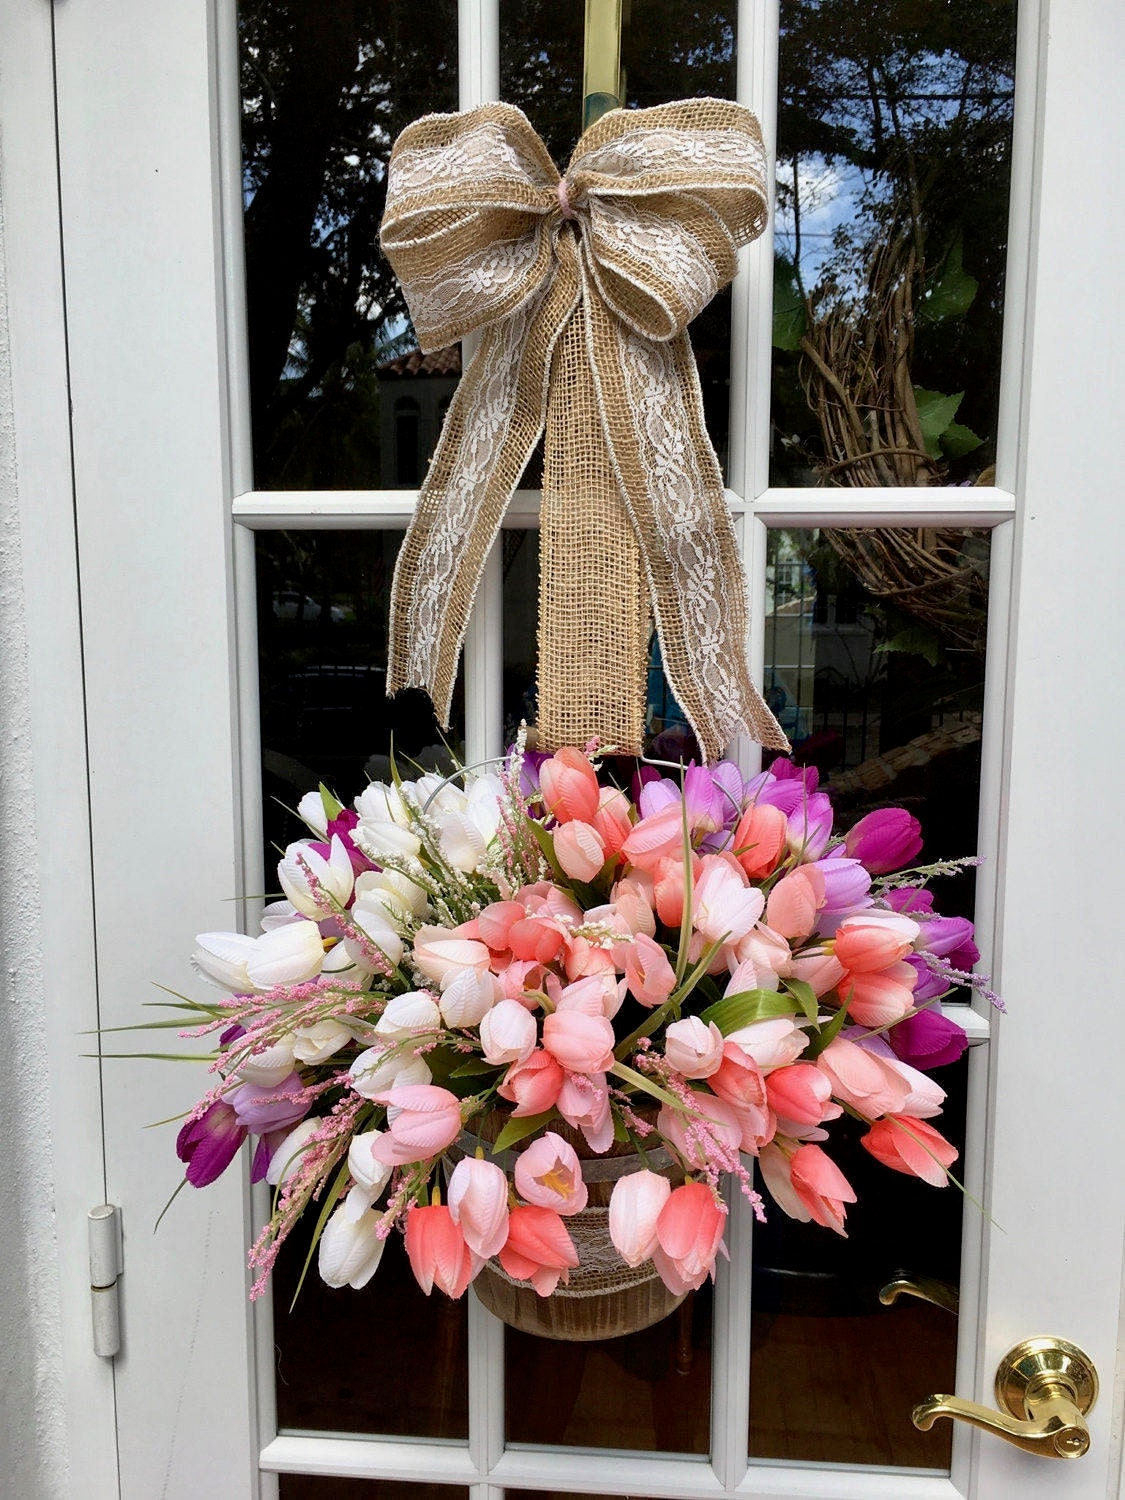 Easter Wreath, Easter Flower Wreath, Flower Wreath, Front Door Wreath,  Easter Flower Basket, Tulip Wreath, Tulip Flower Basket, Tulip Wreath